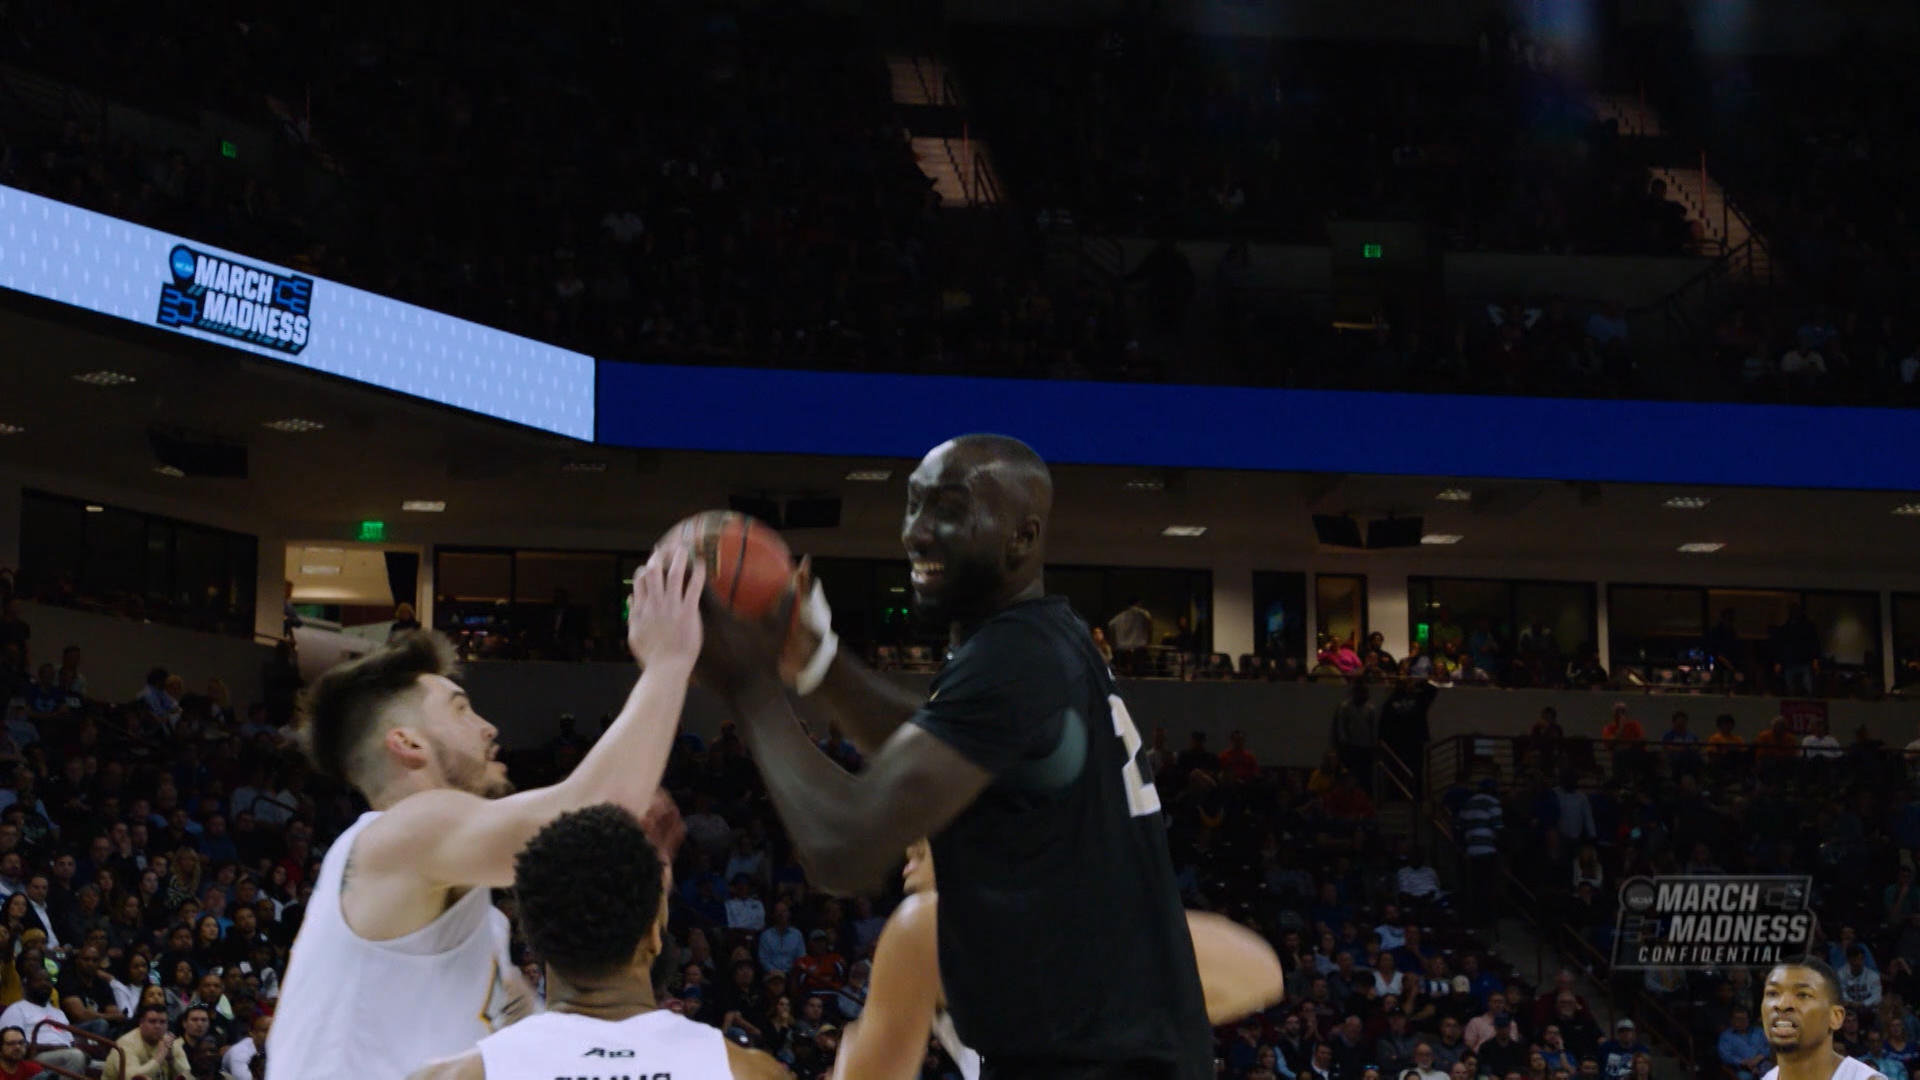 2019 NCAA Tournament: Zion Williamson vs. Tacko Fall lives up to the hype with epic rim collisions